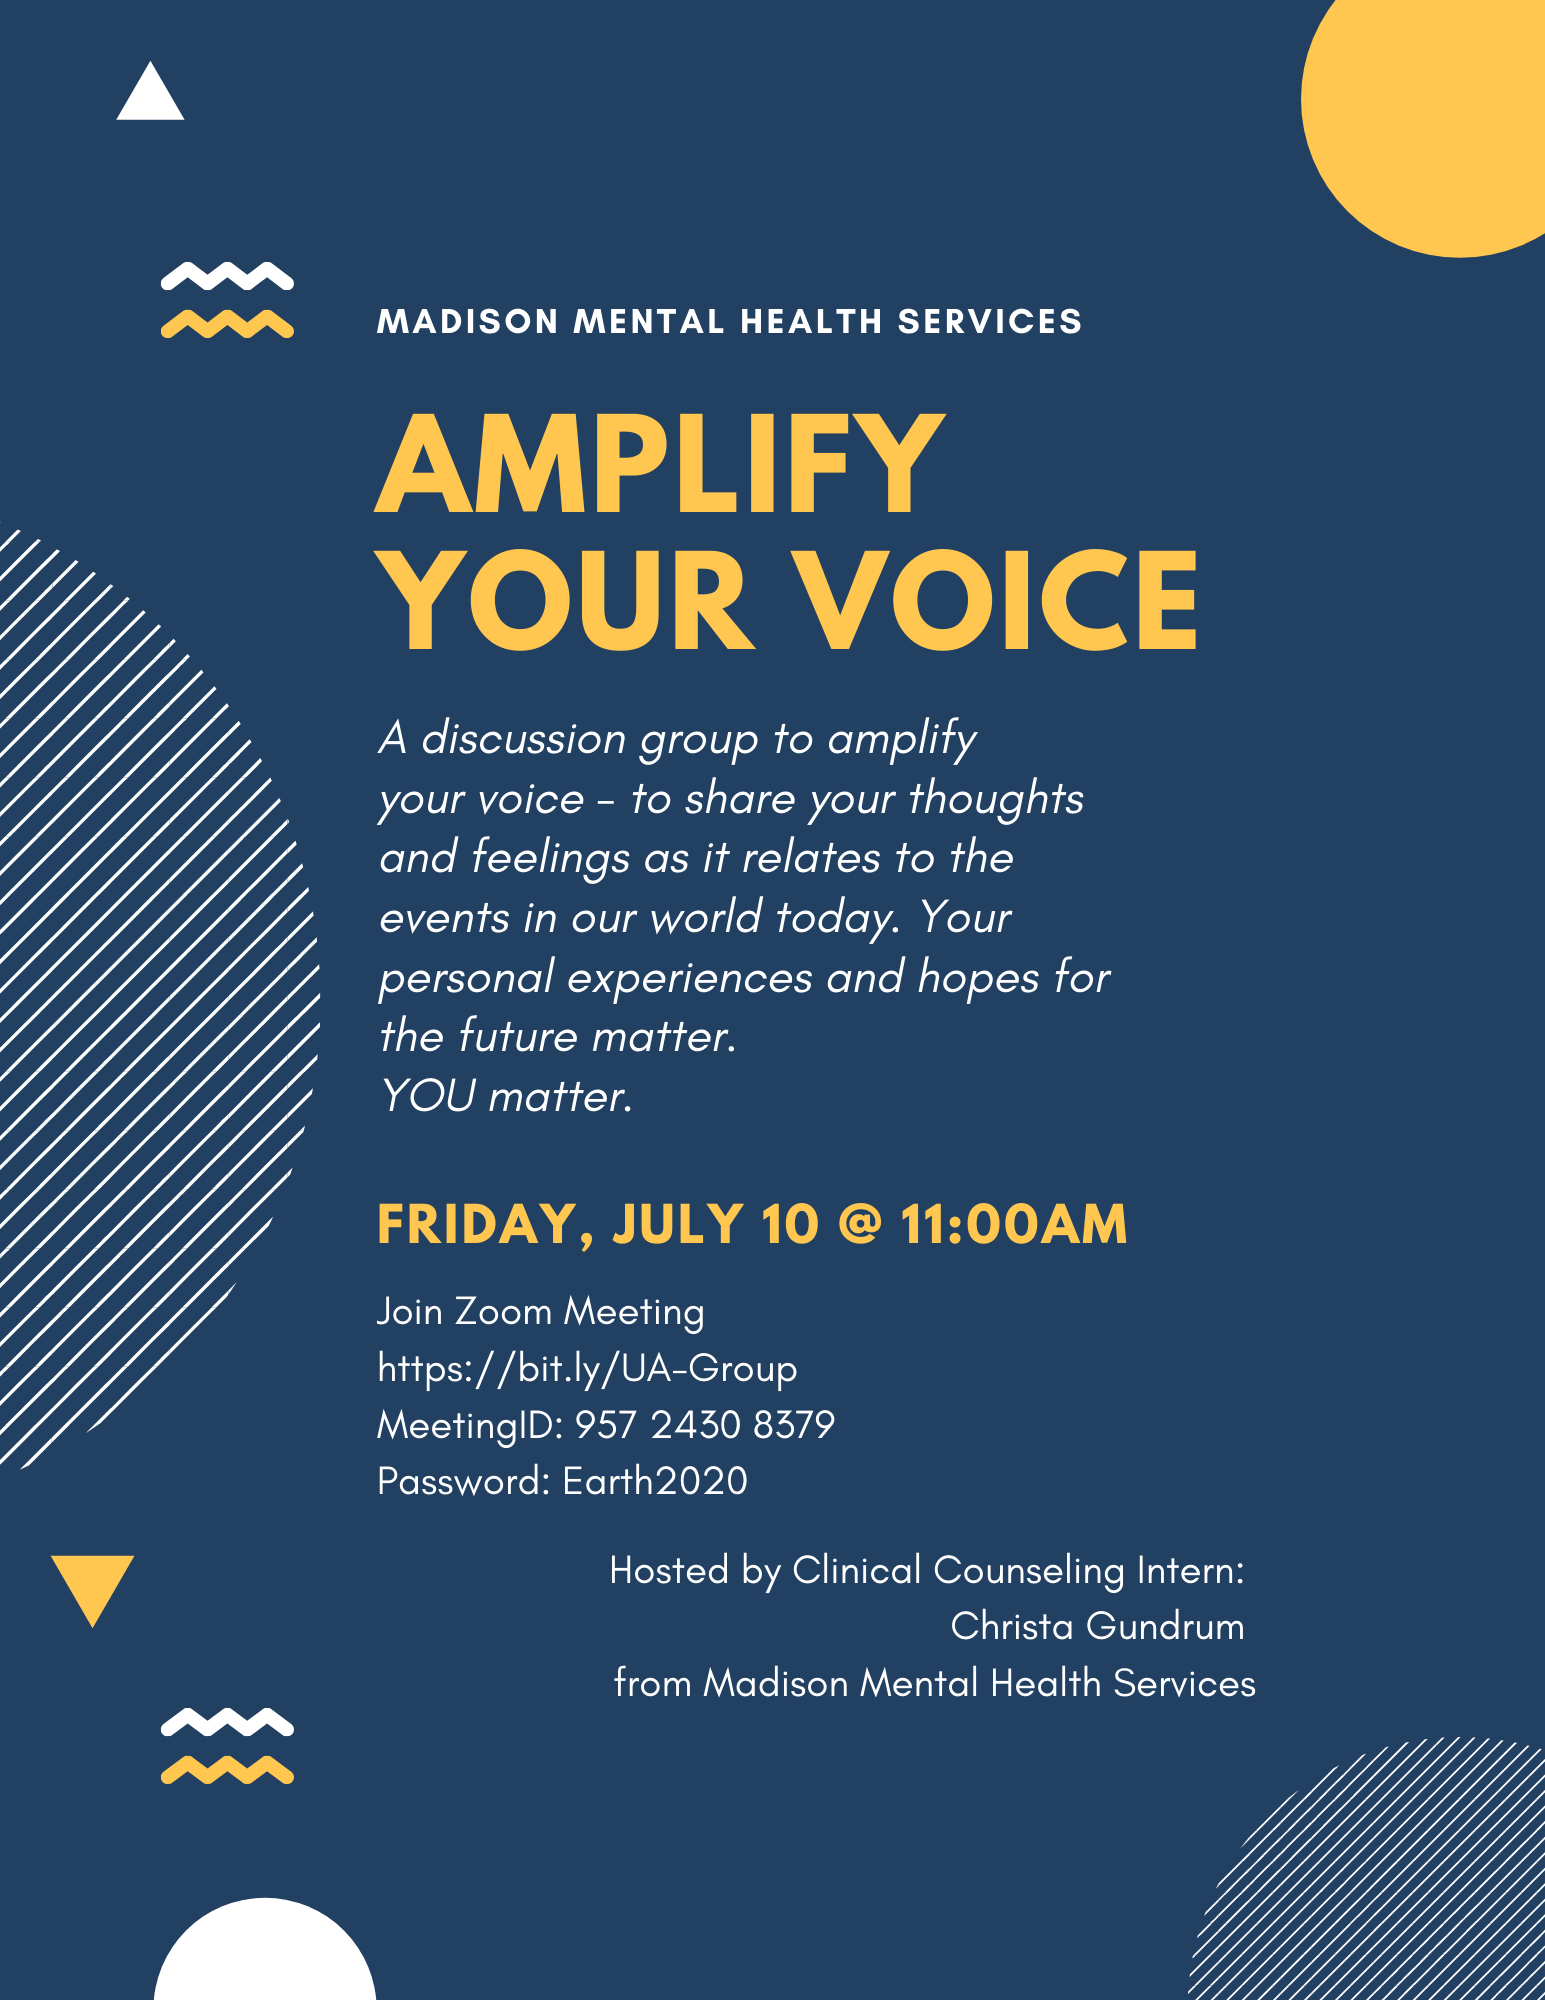 Amplify Your Voice with Madison Mental Health Services on Friday, July 10